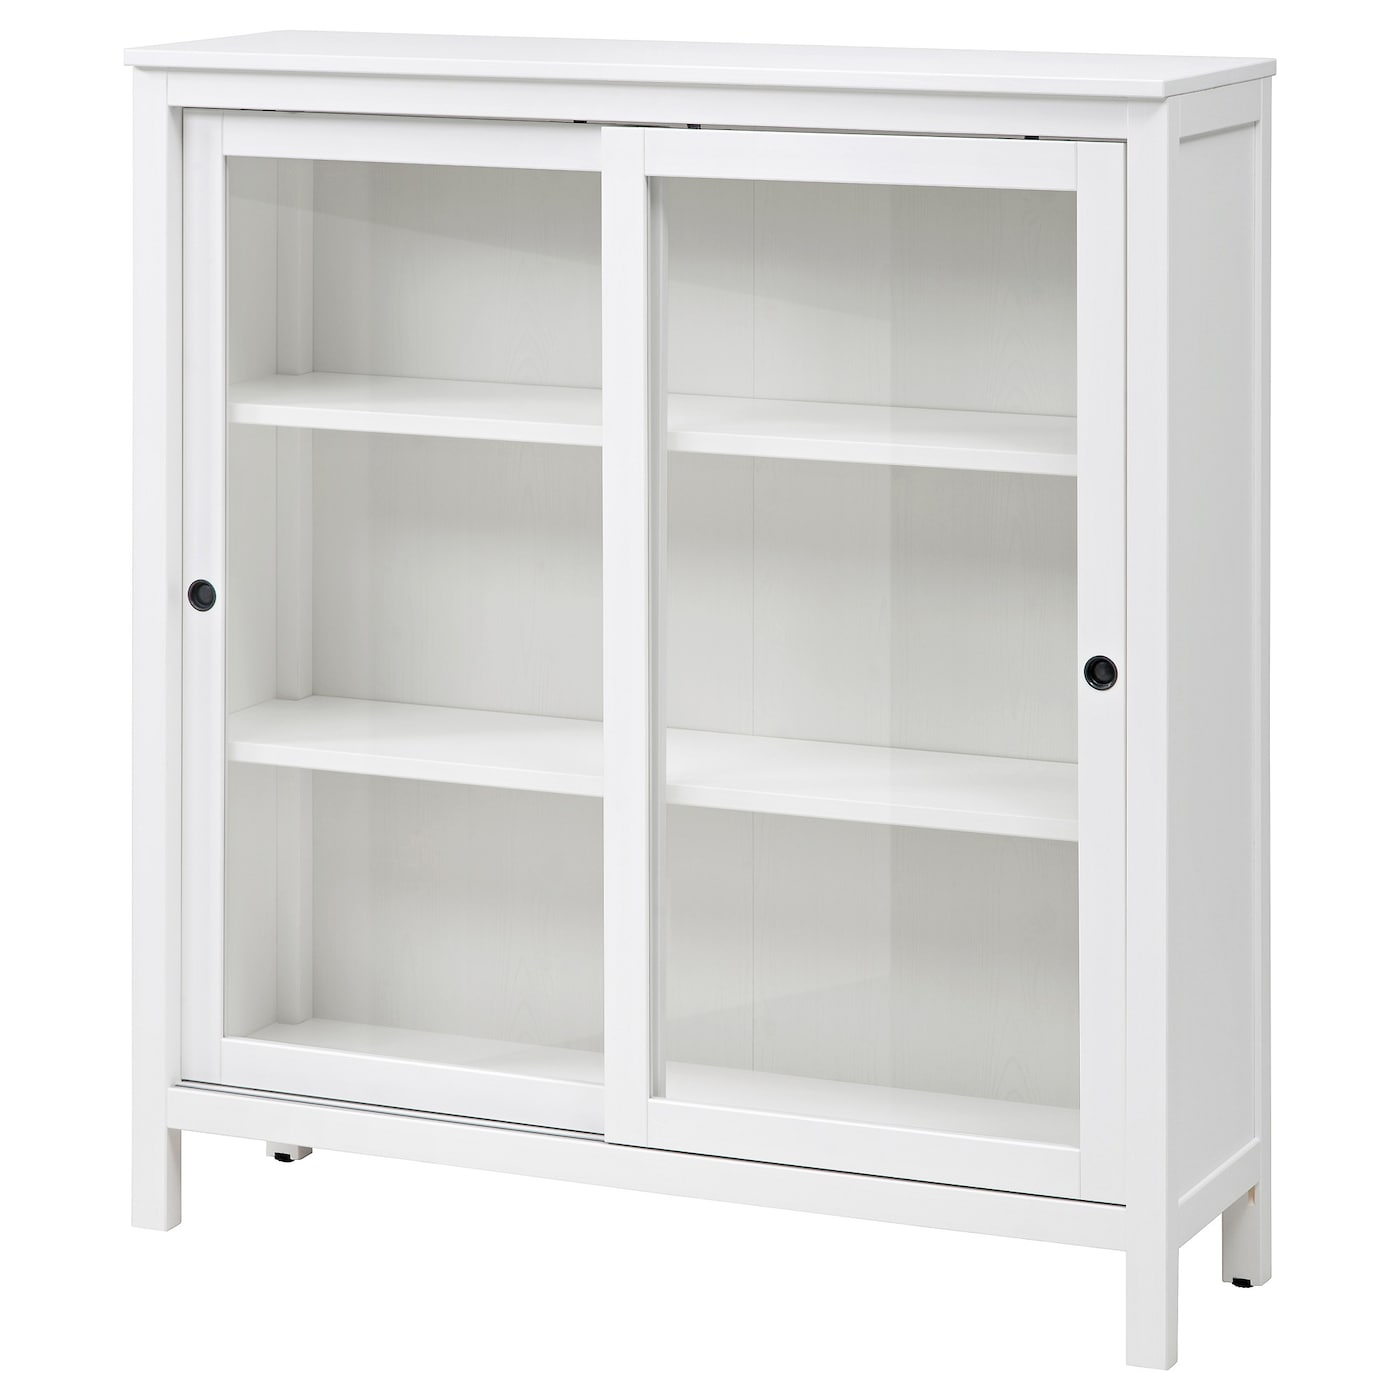 Hemnes glass door cabinet white stain 120x130 cm ikea Glass cabinet doors